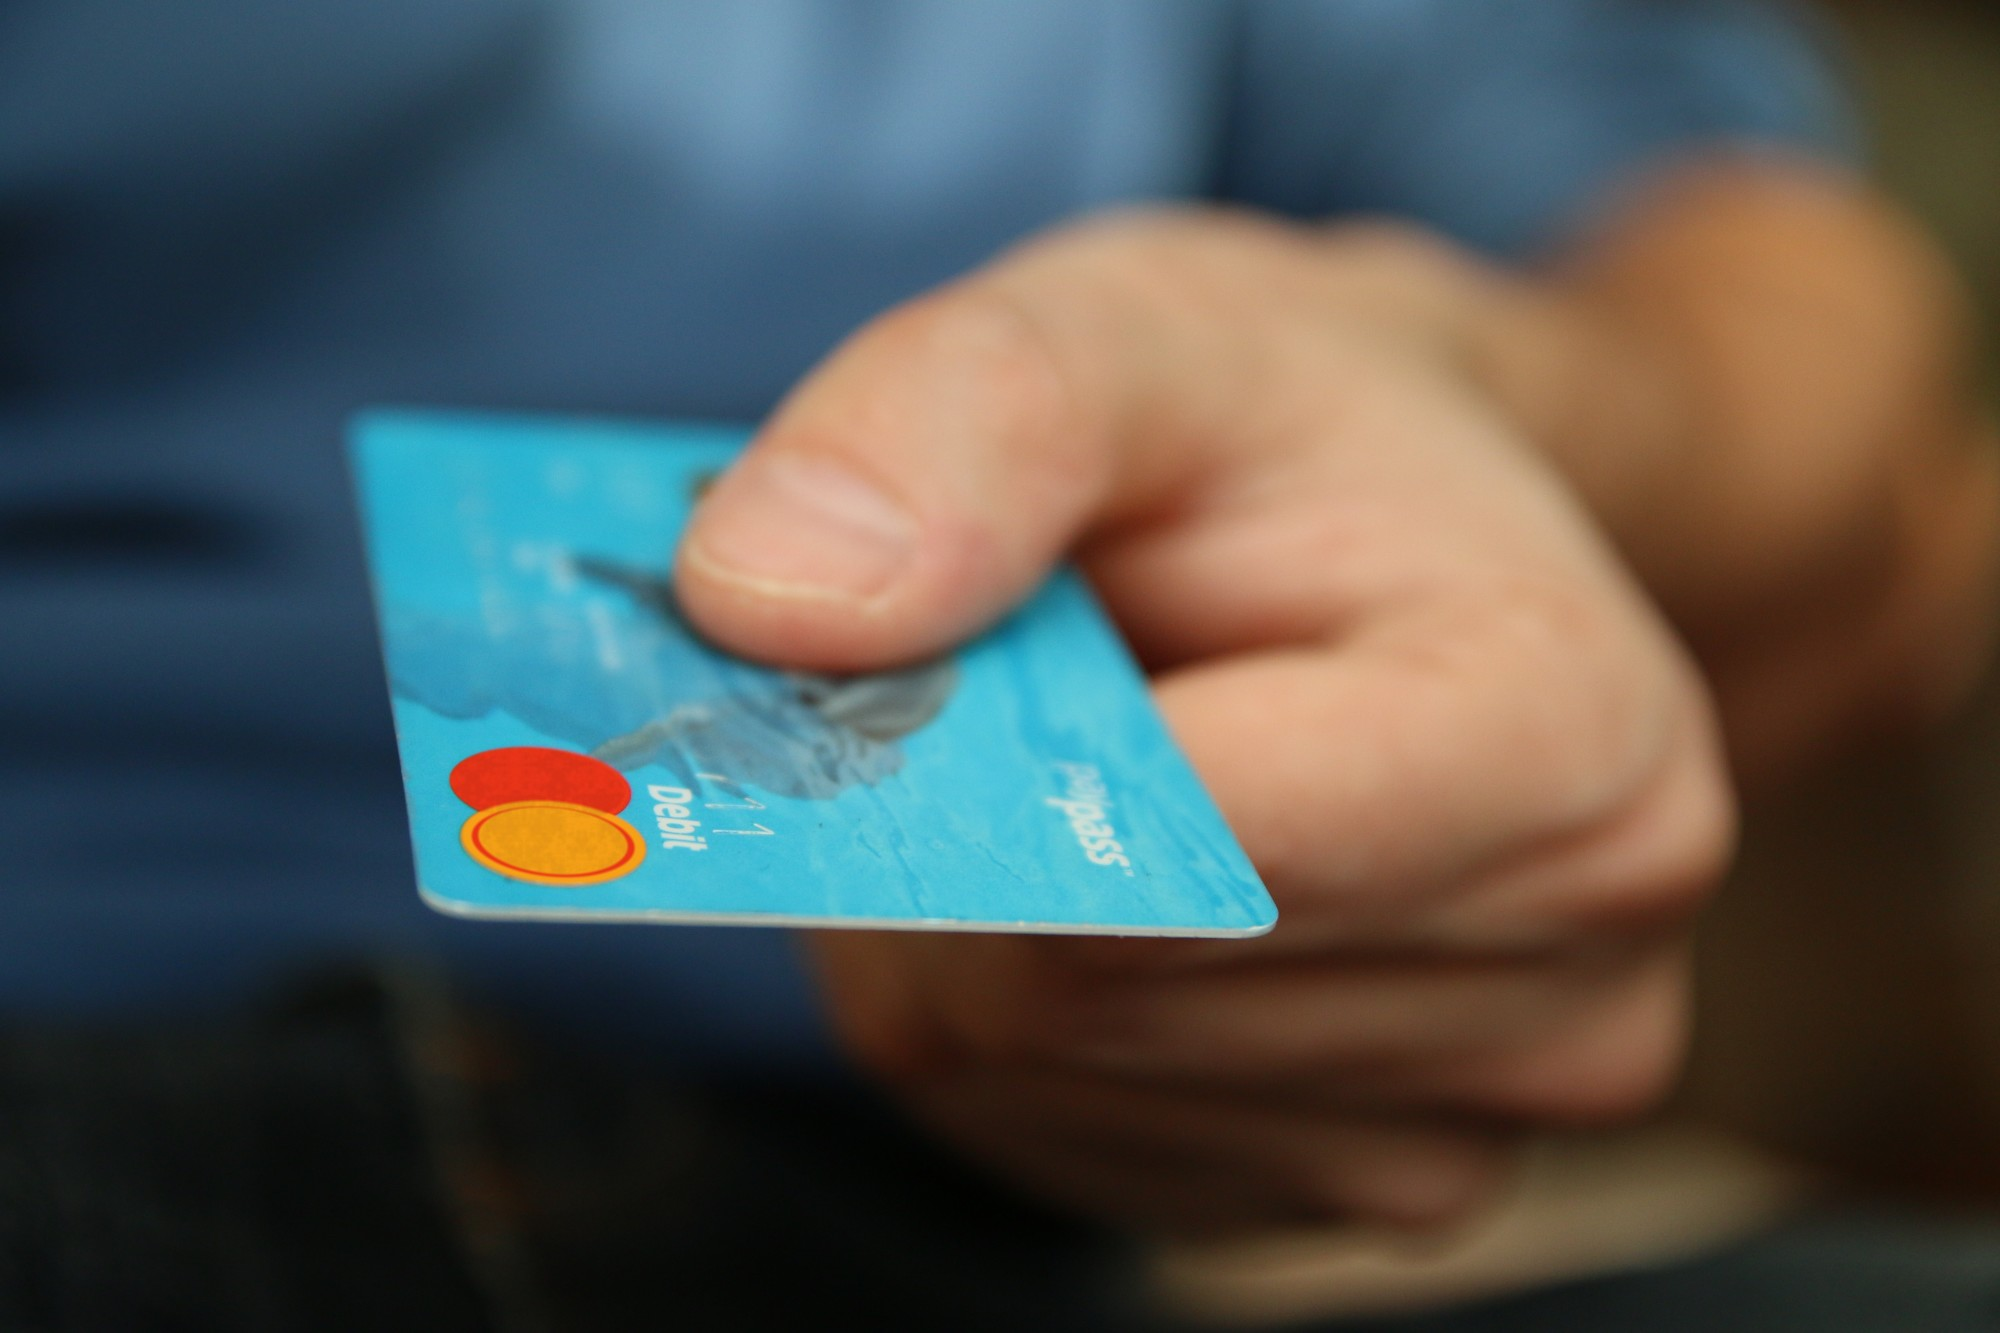 how to protect your credit.jpg